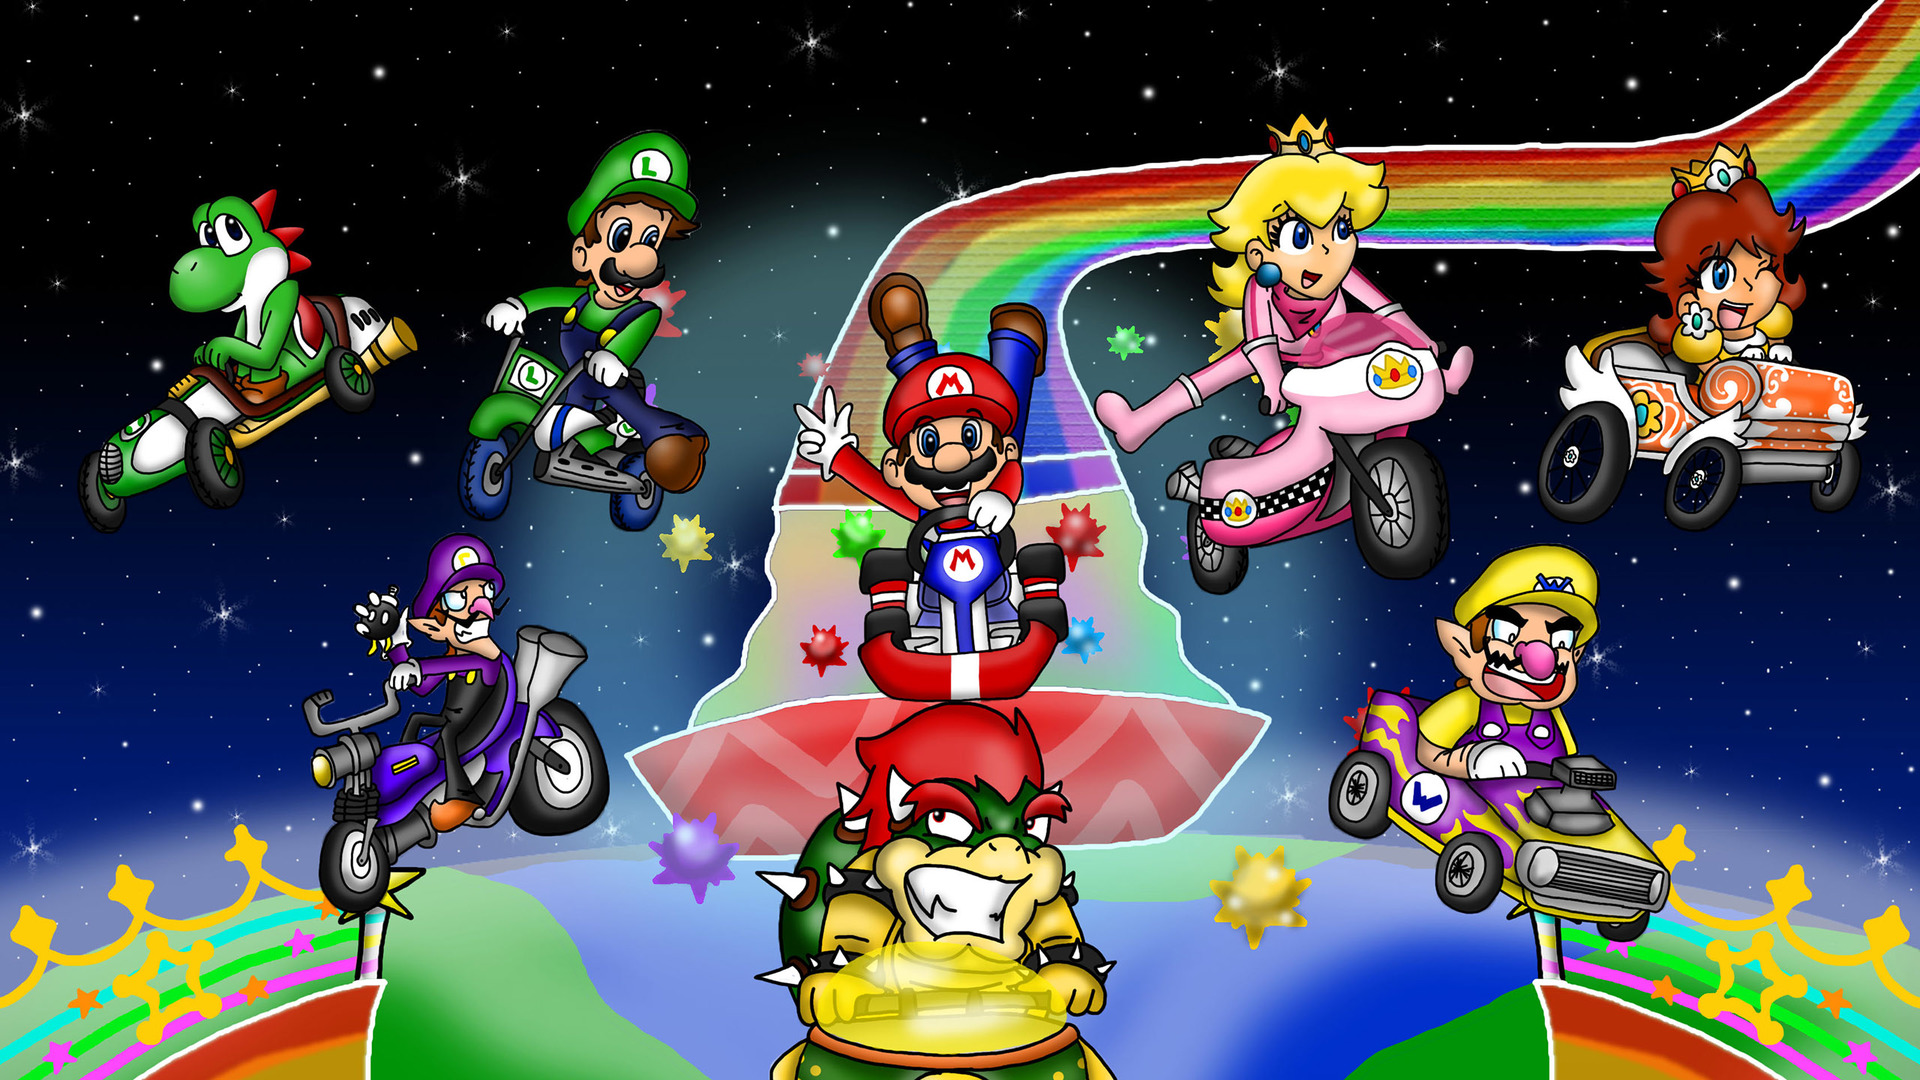 mario-kart-hd-wallpaper